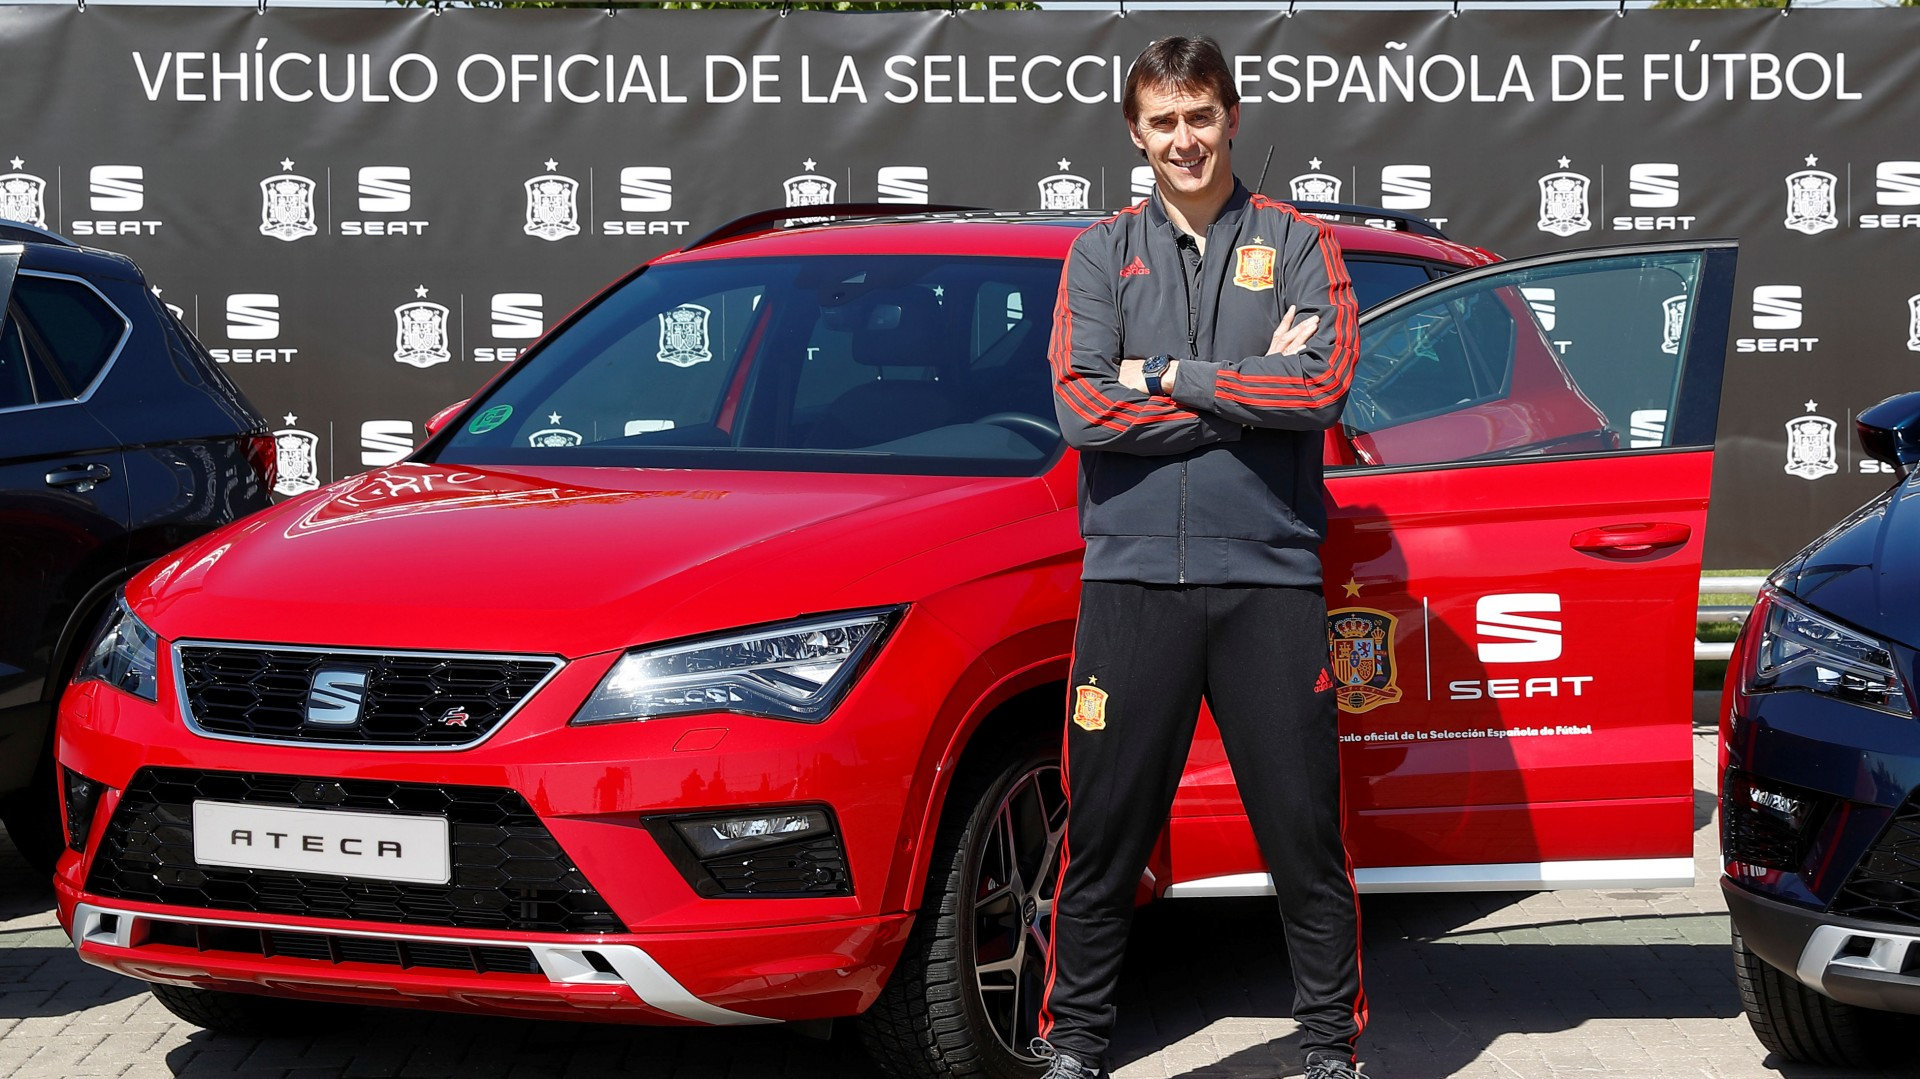 SEAT Sponsor of Spanish National Football Team